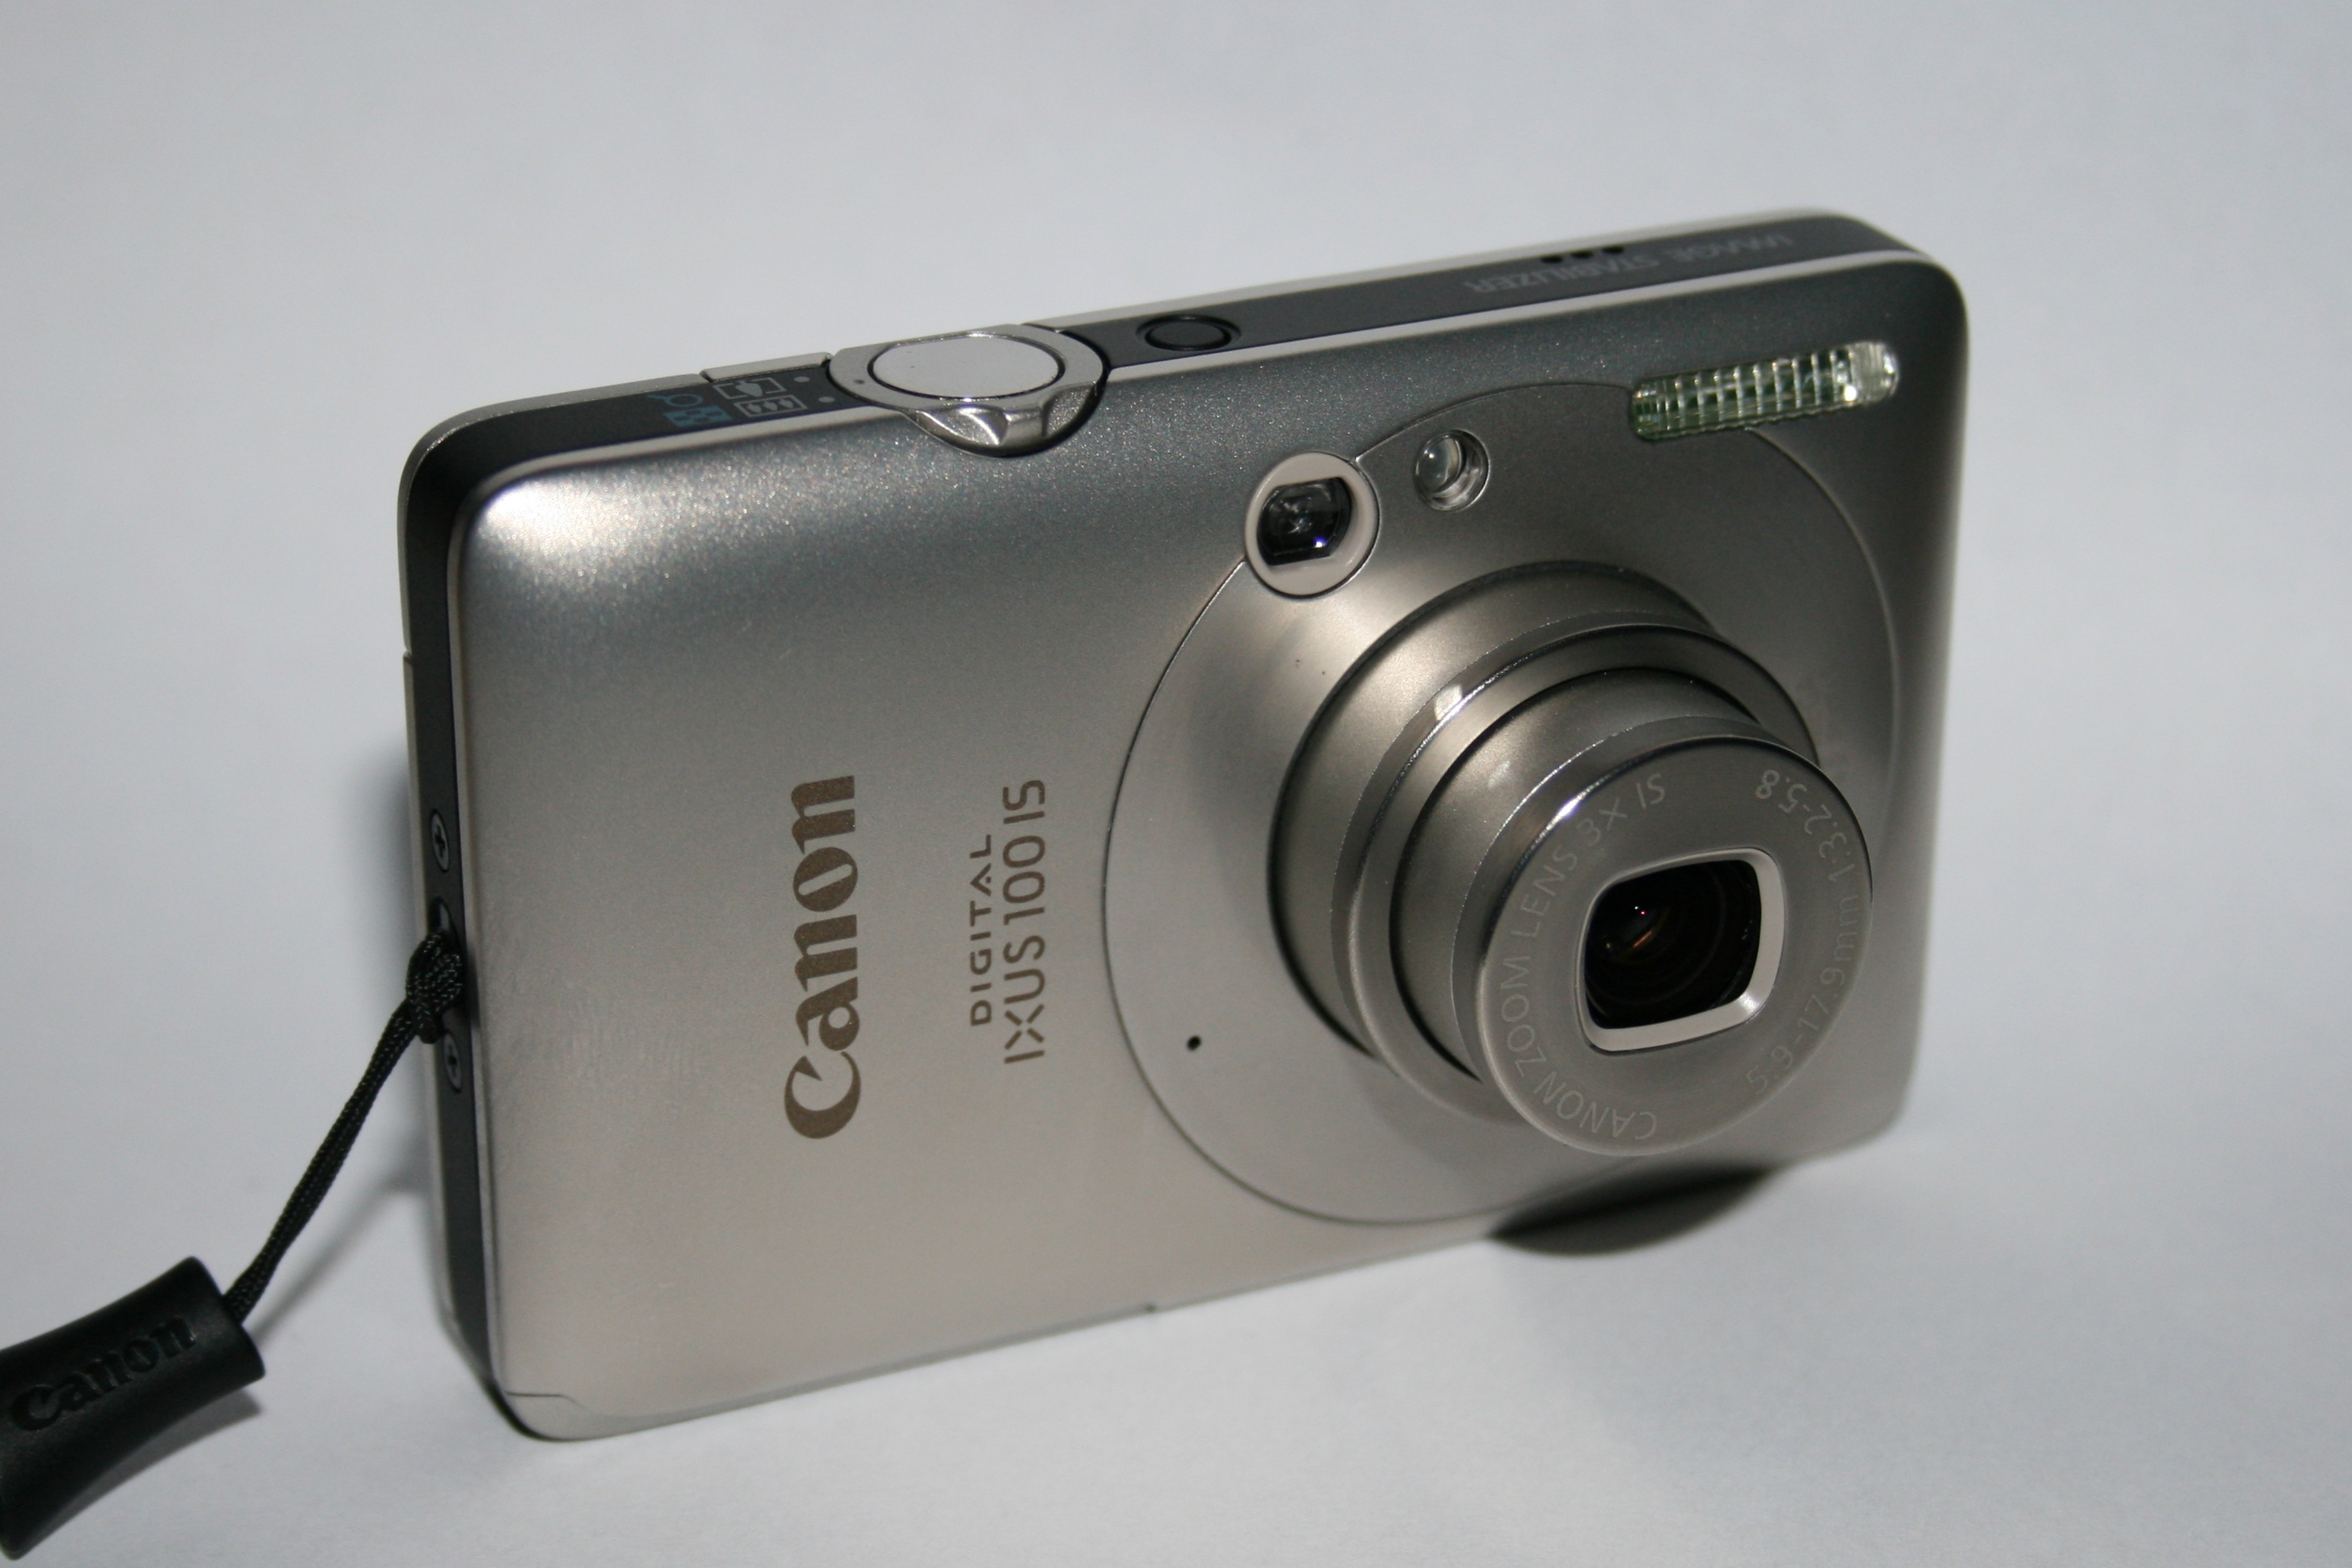 File:Canon Digital IXUS 100 IS-front - oblique.jpg